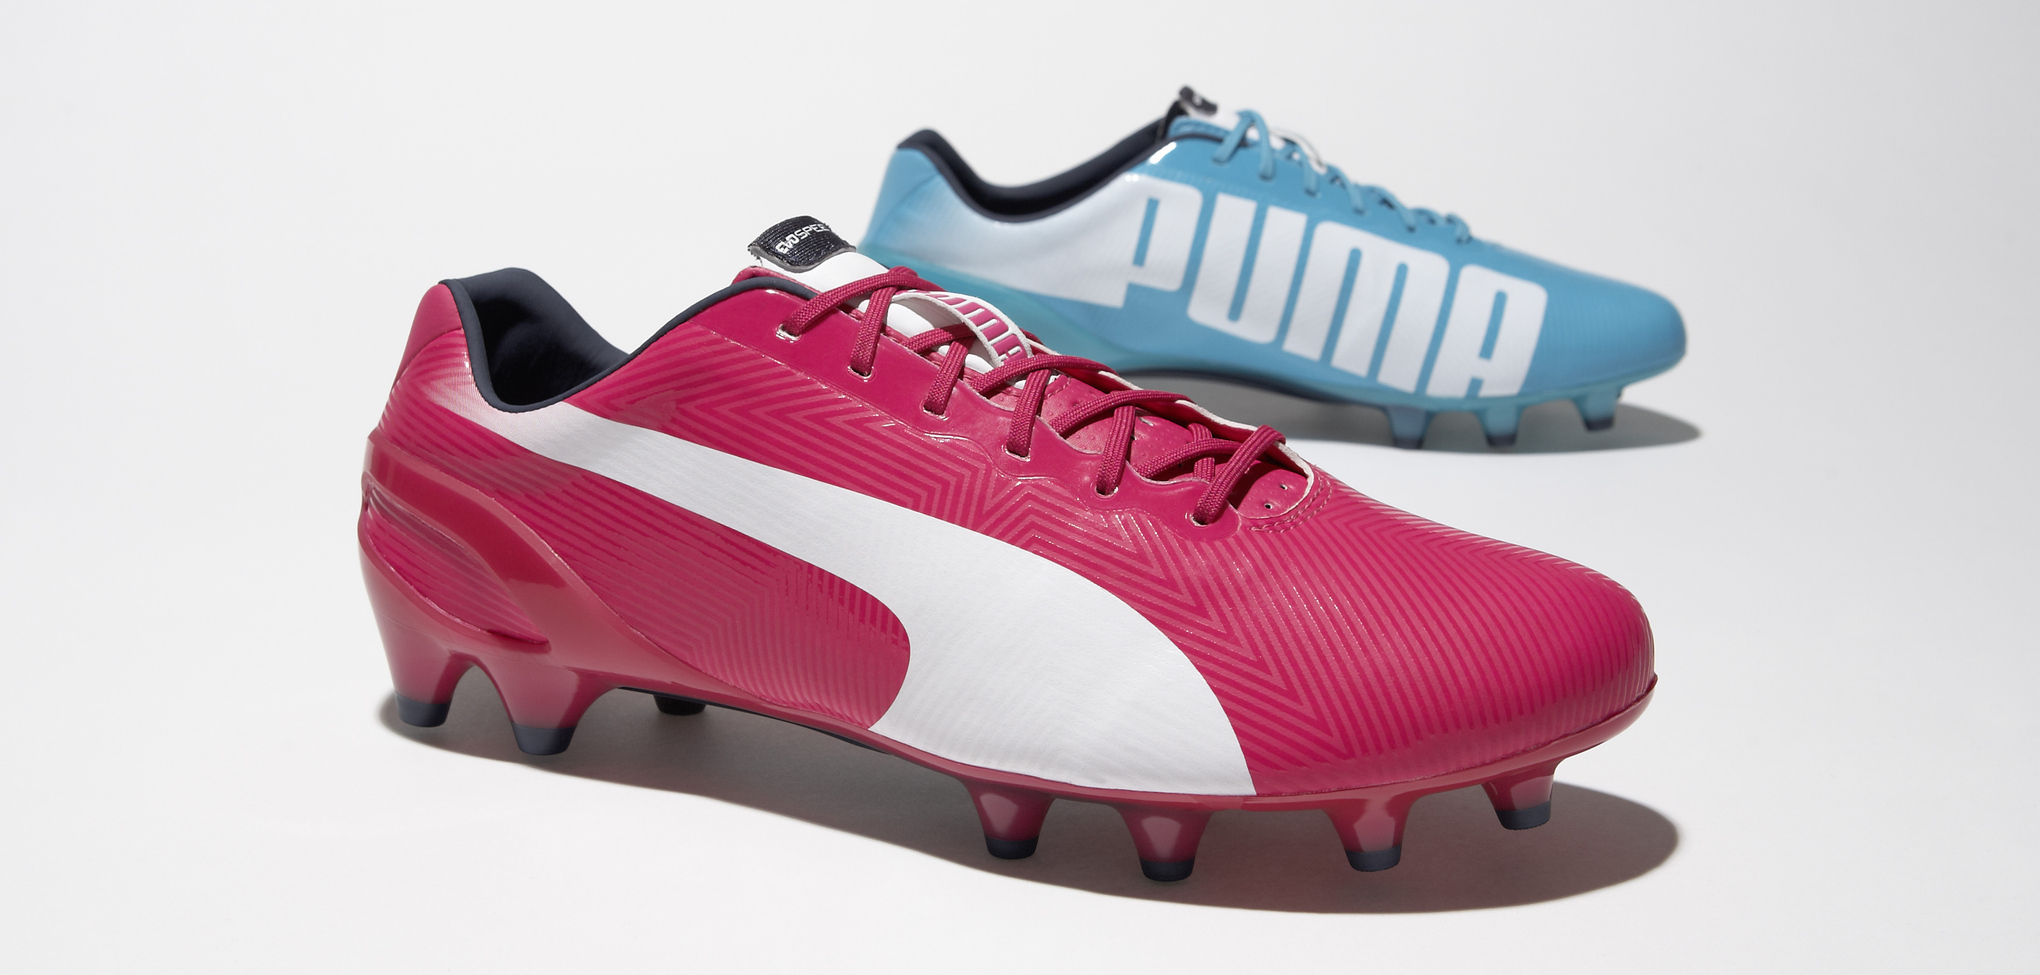 2b39b1a2e Puma doubles the colors, fun with new evoSPEED and evoPOWER ...